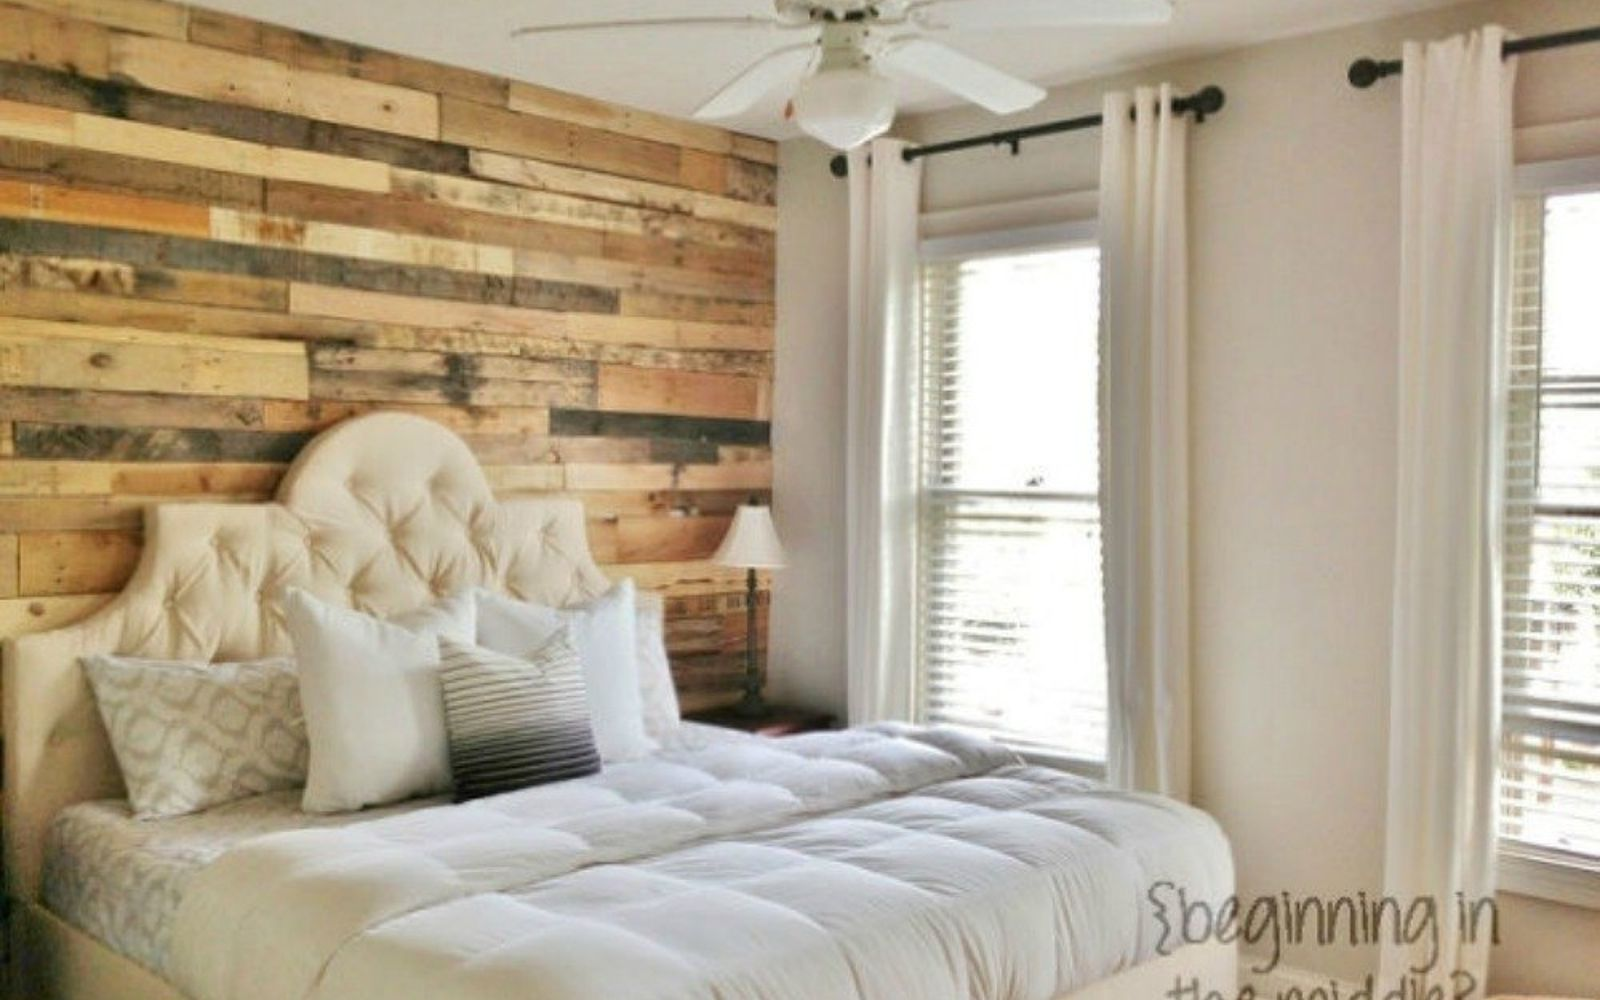 s 13 stylish ideas you ll want to steal for your boring bedroom, bedroom ideas, Build a pallet accent wall